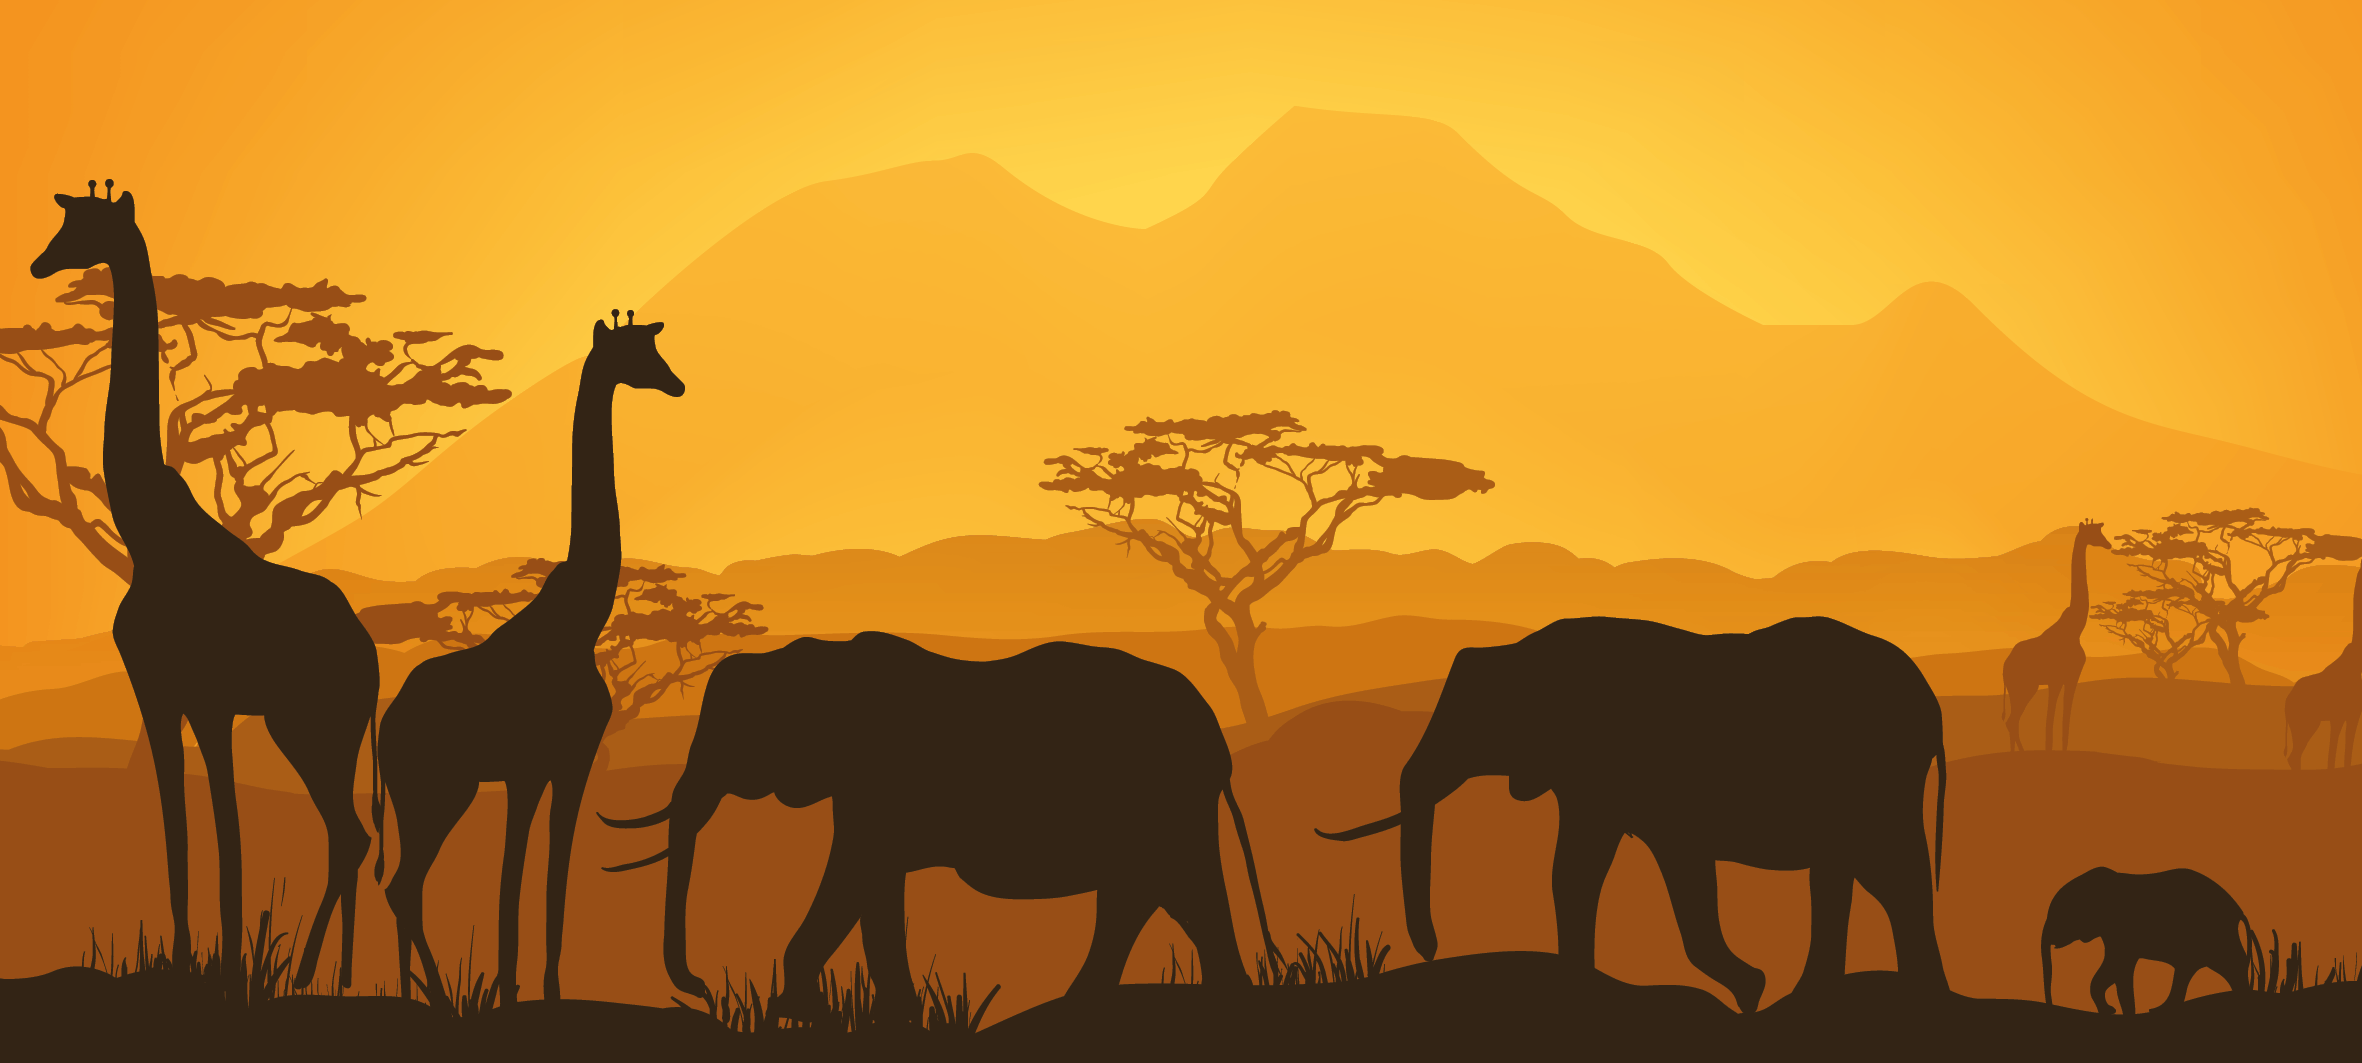 glamping safari infographic detail